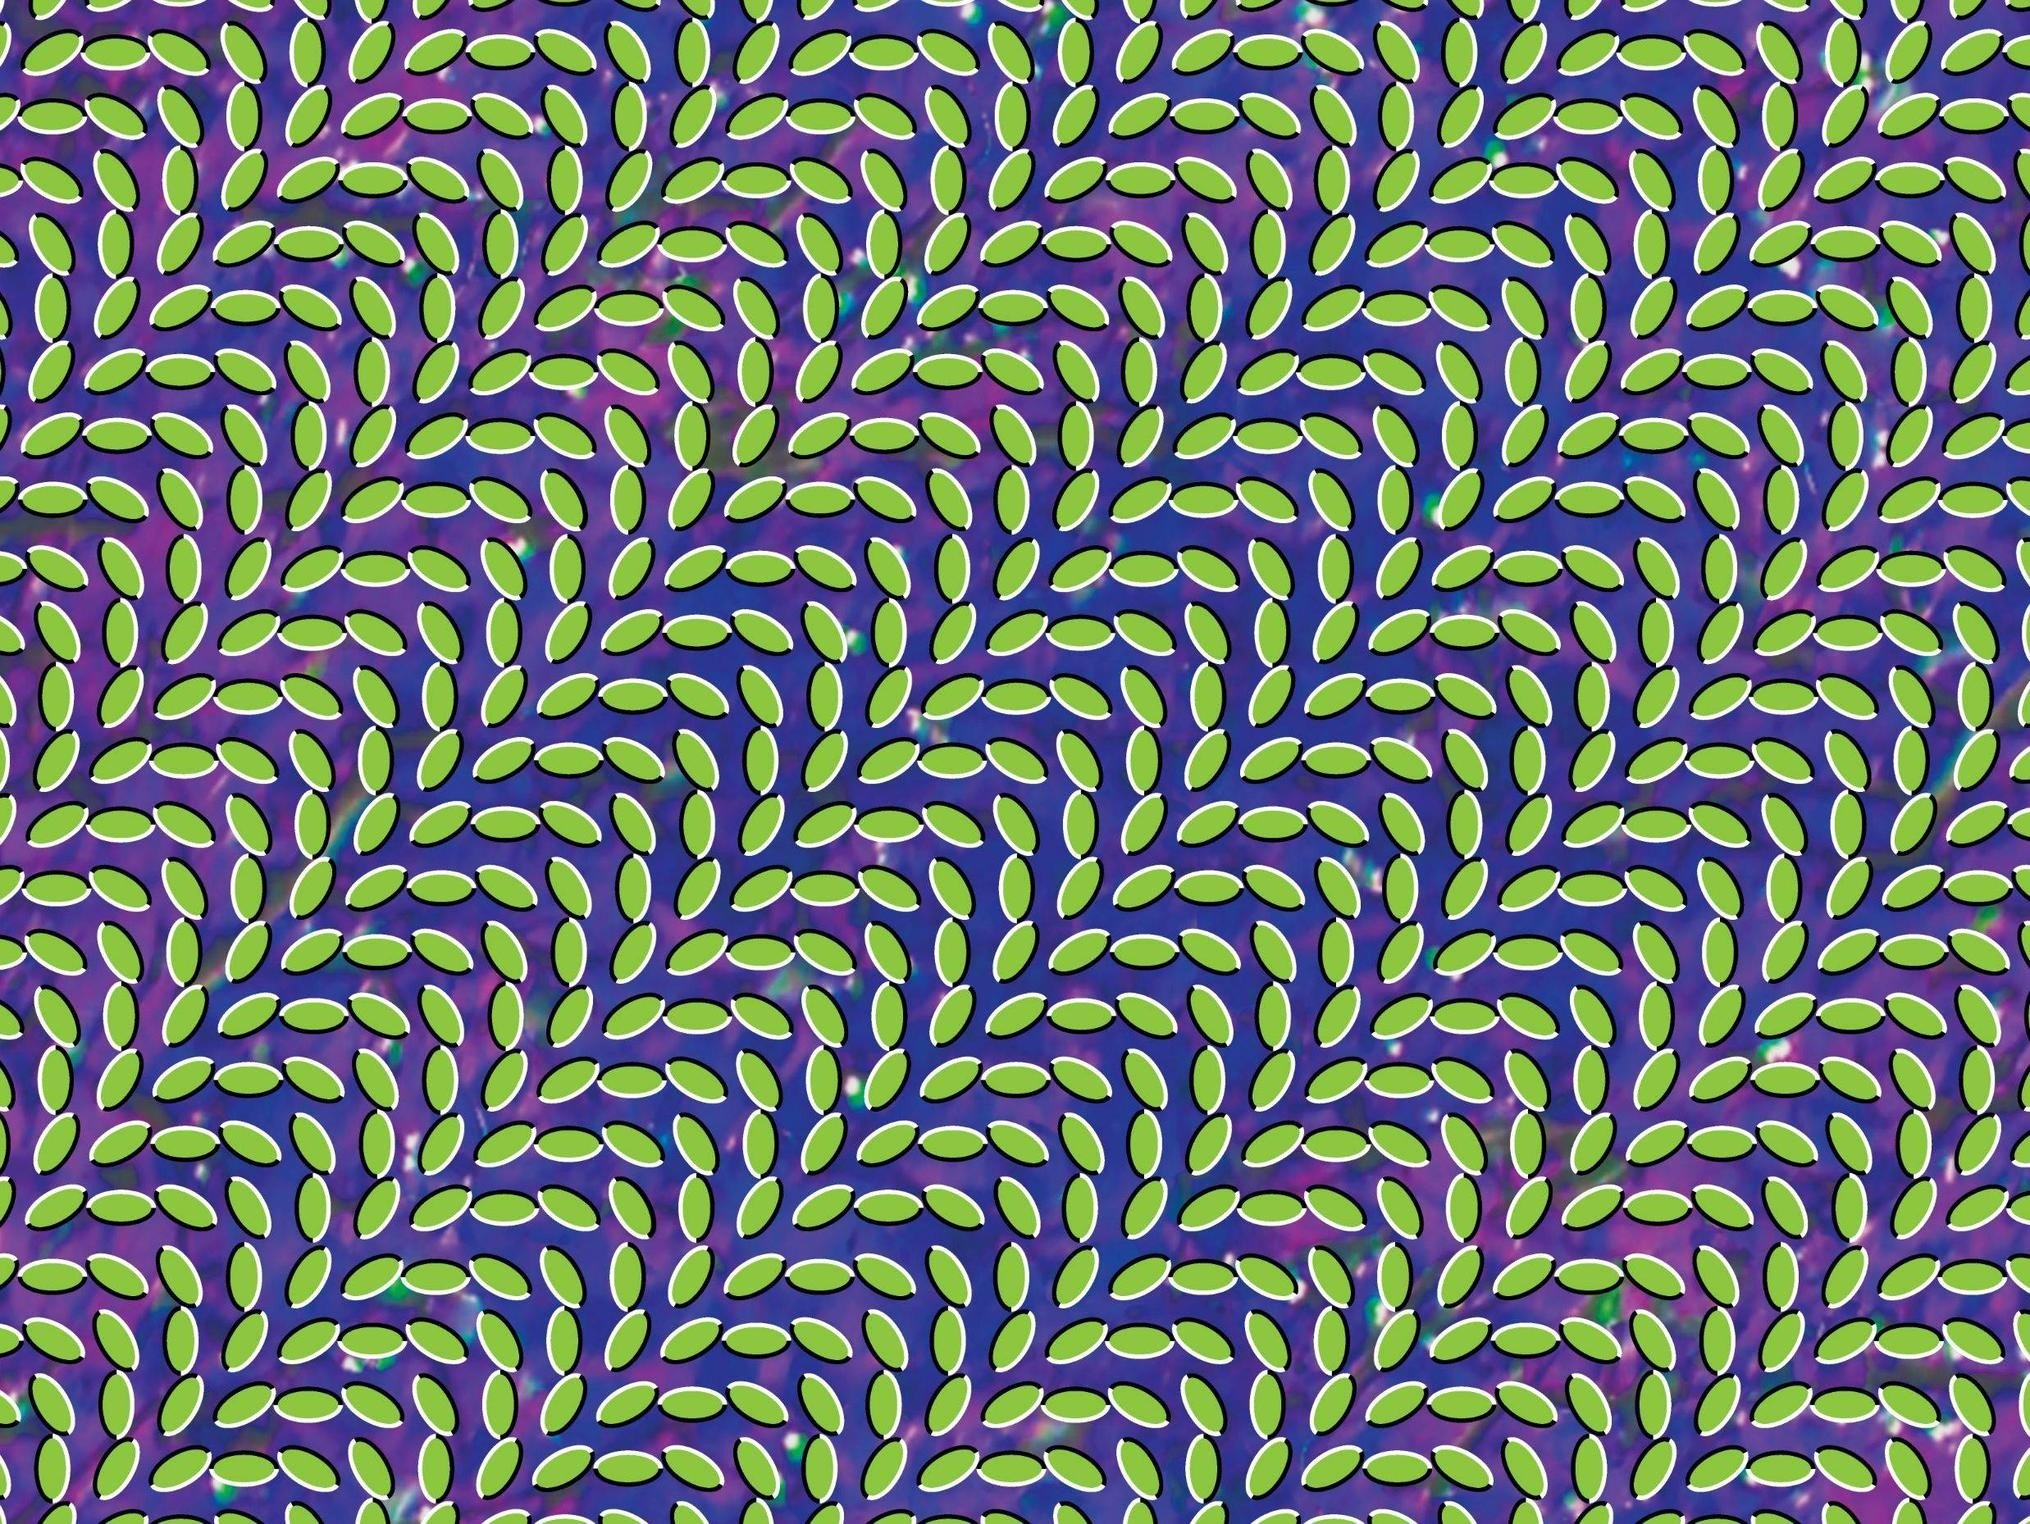 Music Album Covers Wallpaper And Background - Animal Collective Merriweather Post Pavilion , HD Wallpaper & Backgrounds